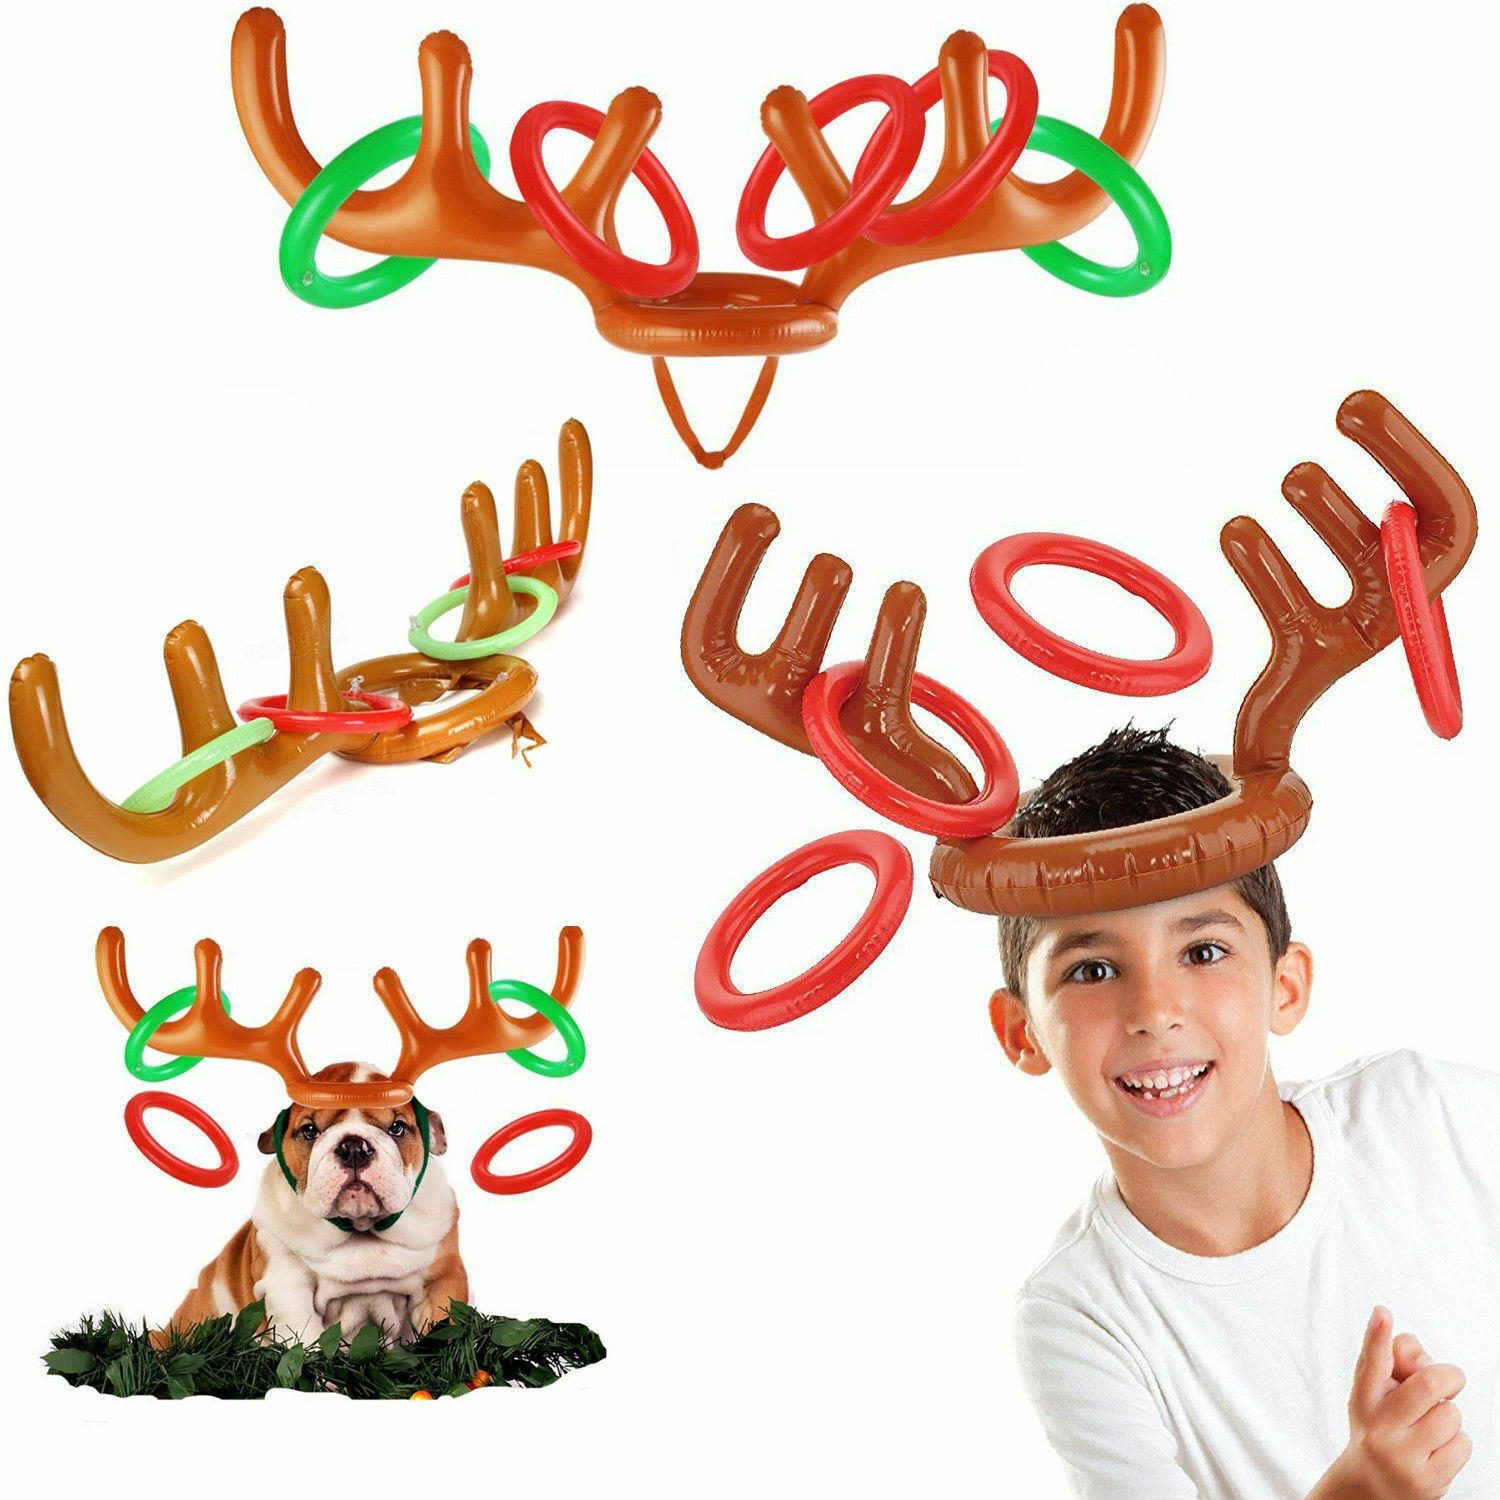 Family Party Toss Game Inflatable Reindeer Antler Hat With Rings Throwing Circle Toys Fun Santa Game Christmas Home Decorate